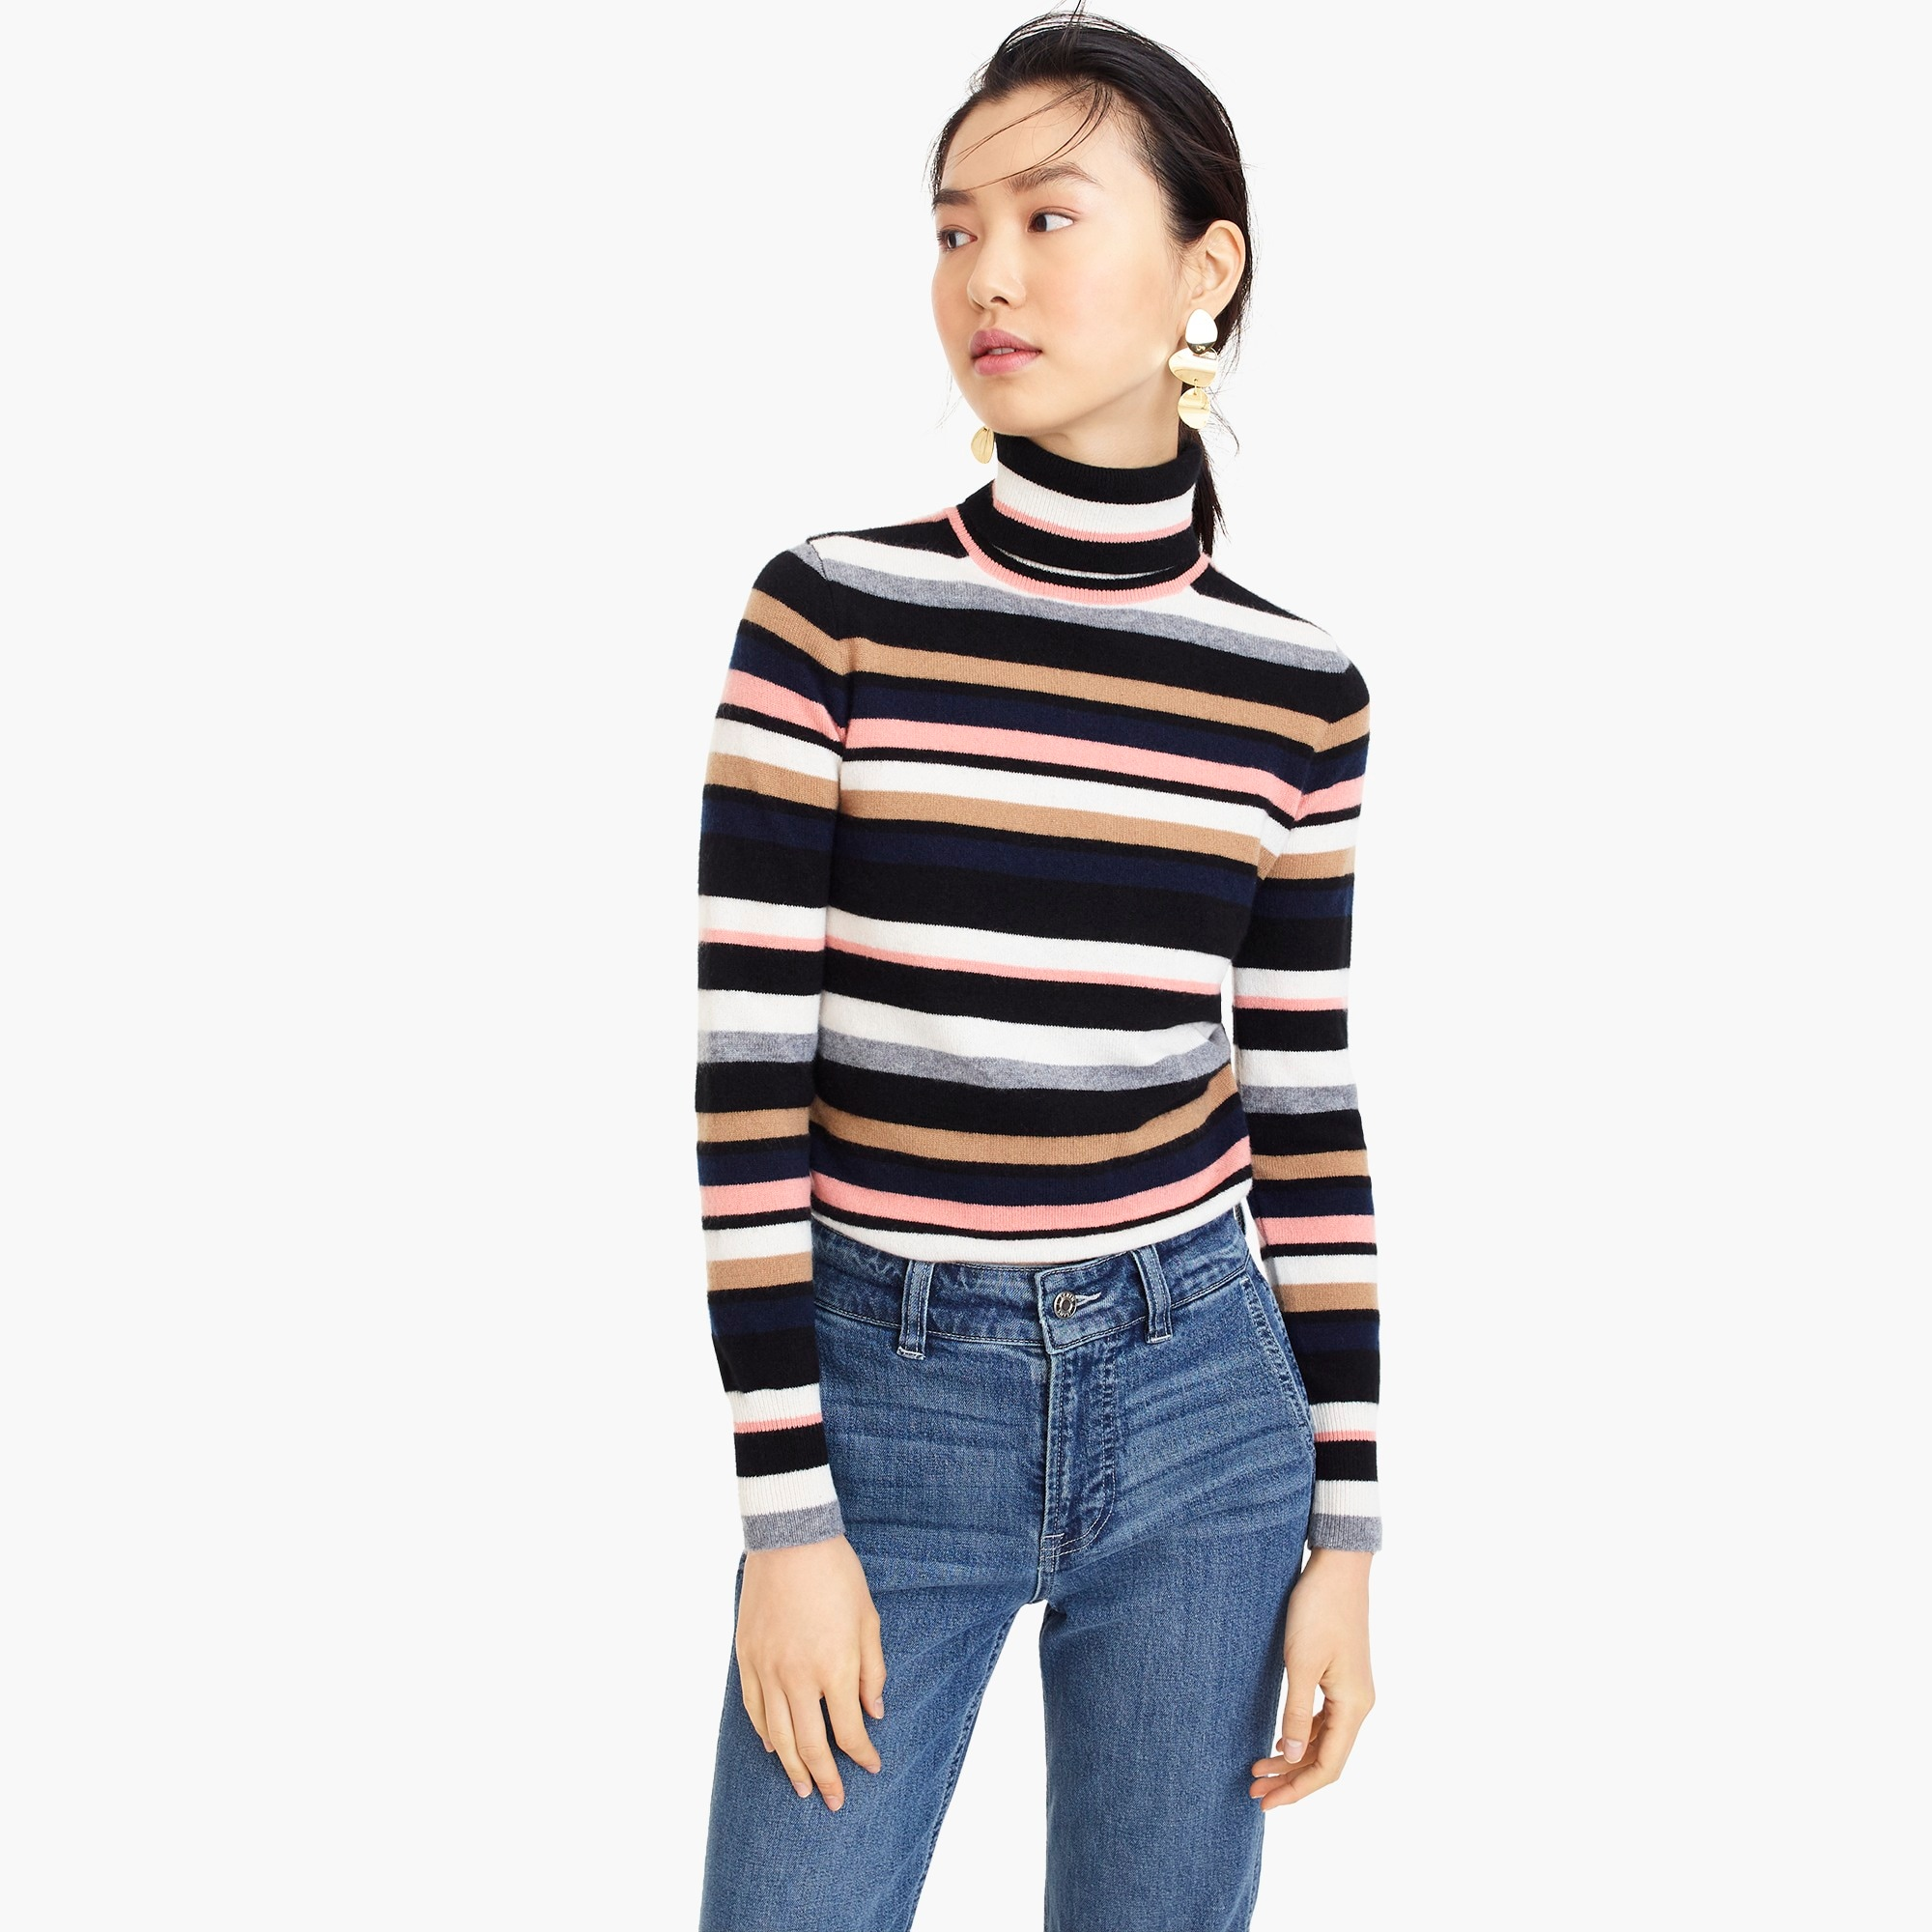 womens Turtleneck sweater in striped everyday cashmere